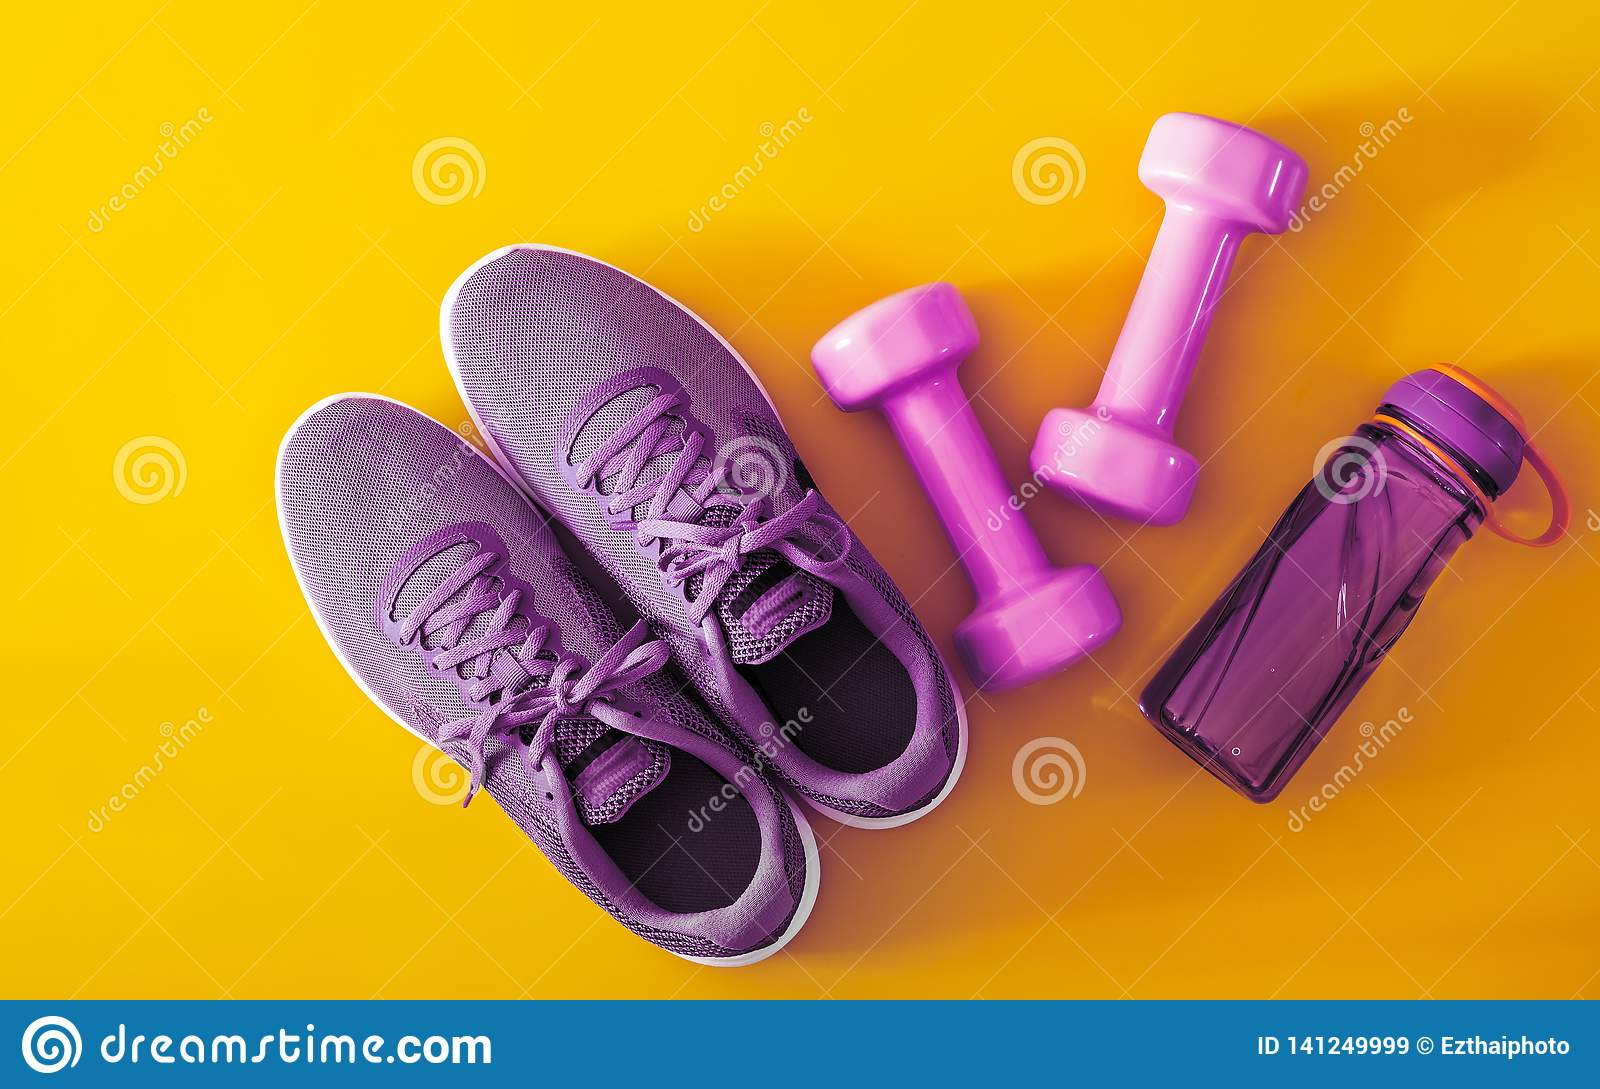 Top view of purple and violet sport shoes, dumbbells and bottle of water on yellow background. Fitness and Healthy lifestyle